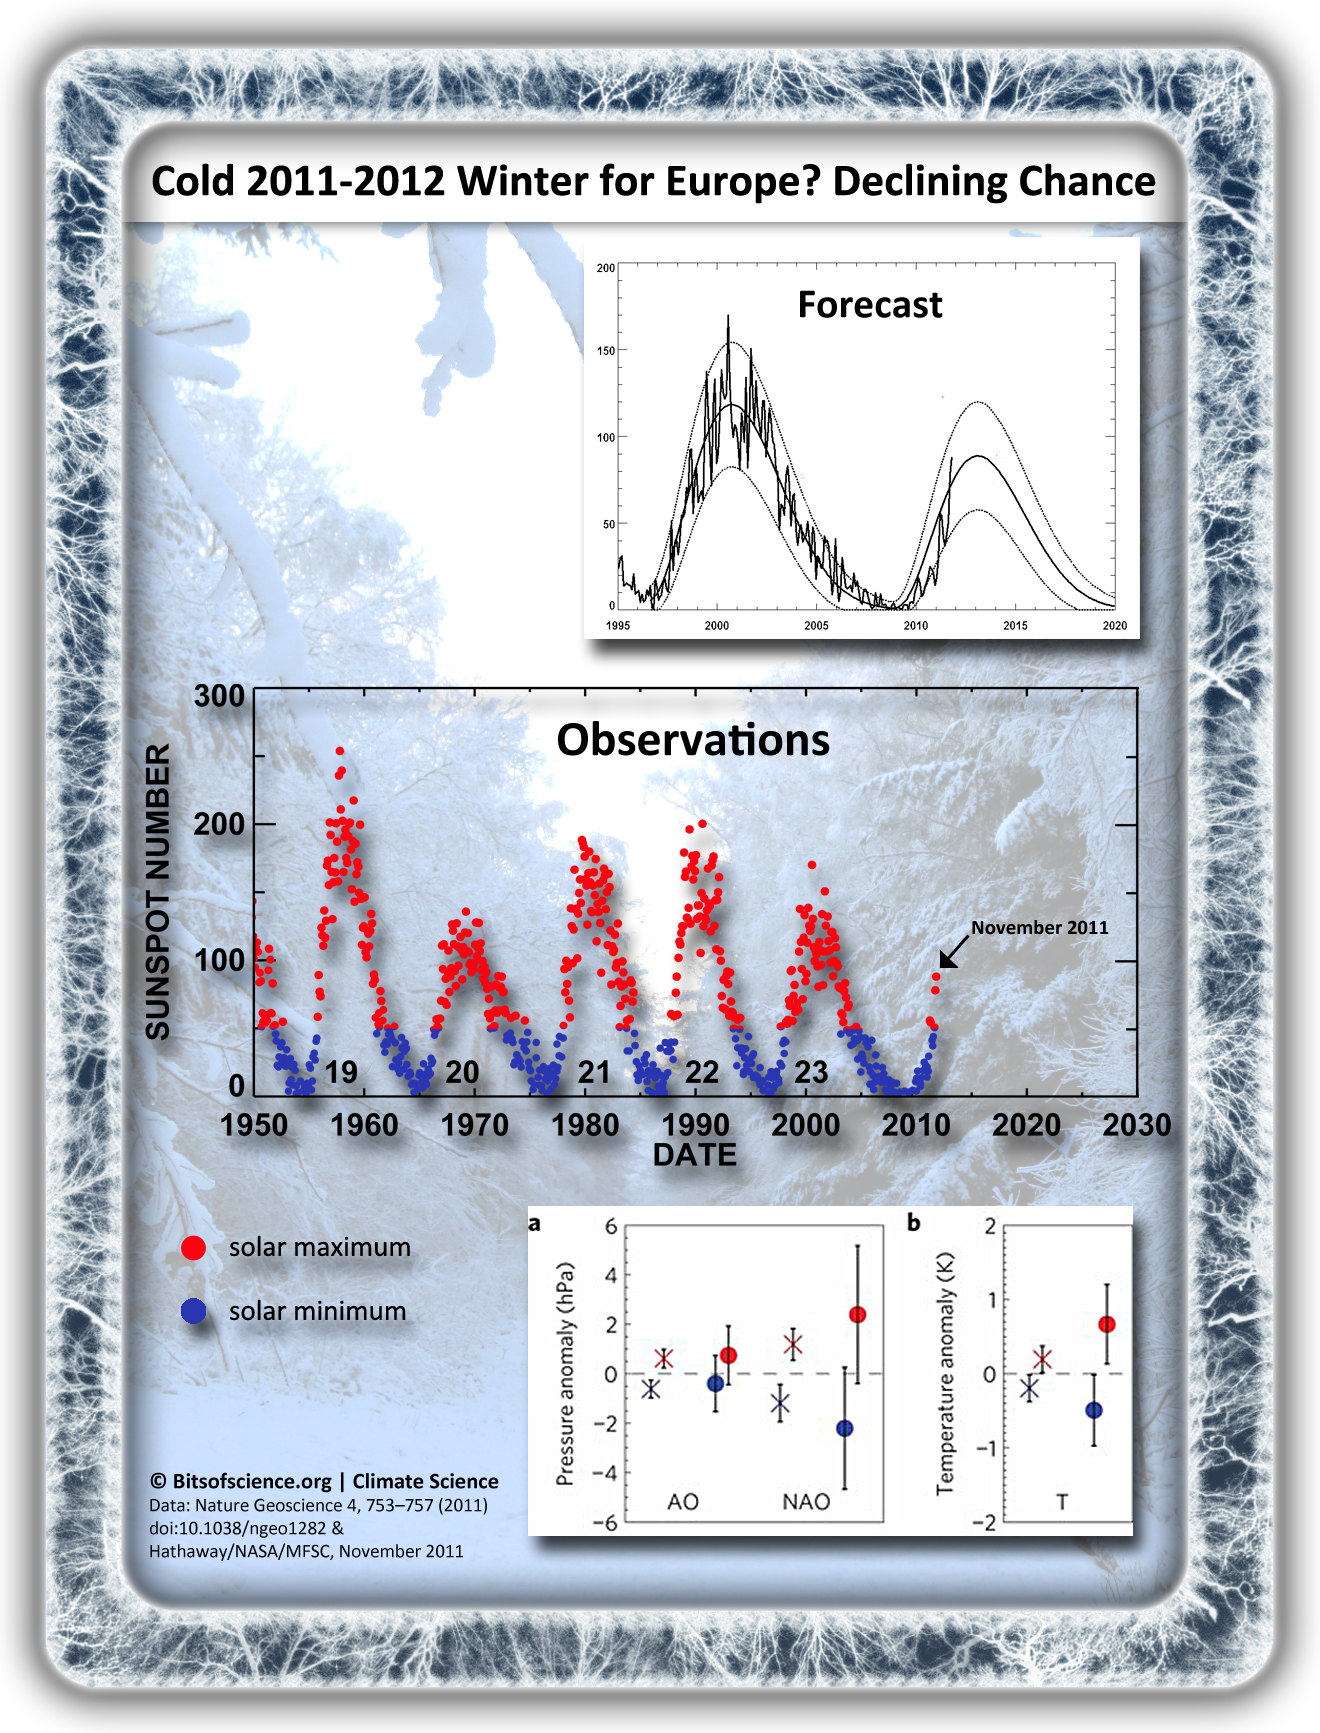 influence solar cycle on winter 2011-2012